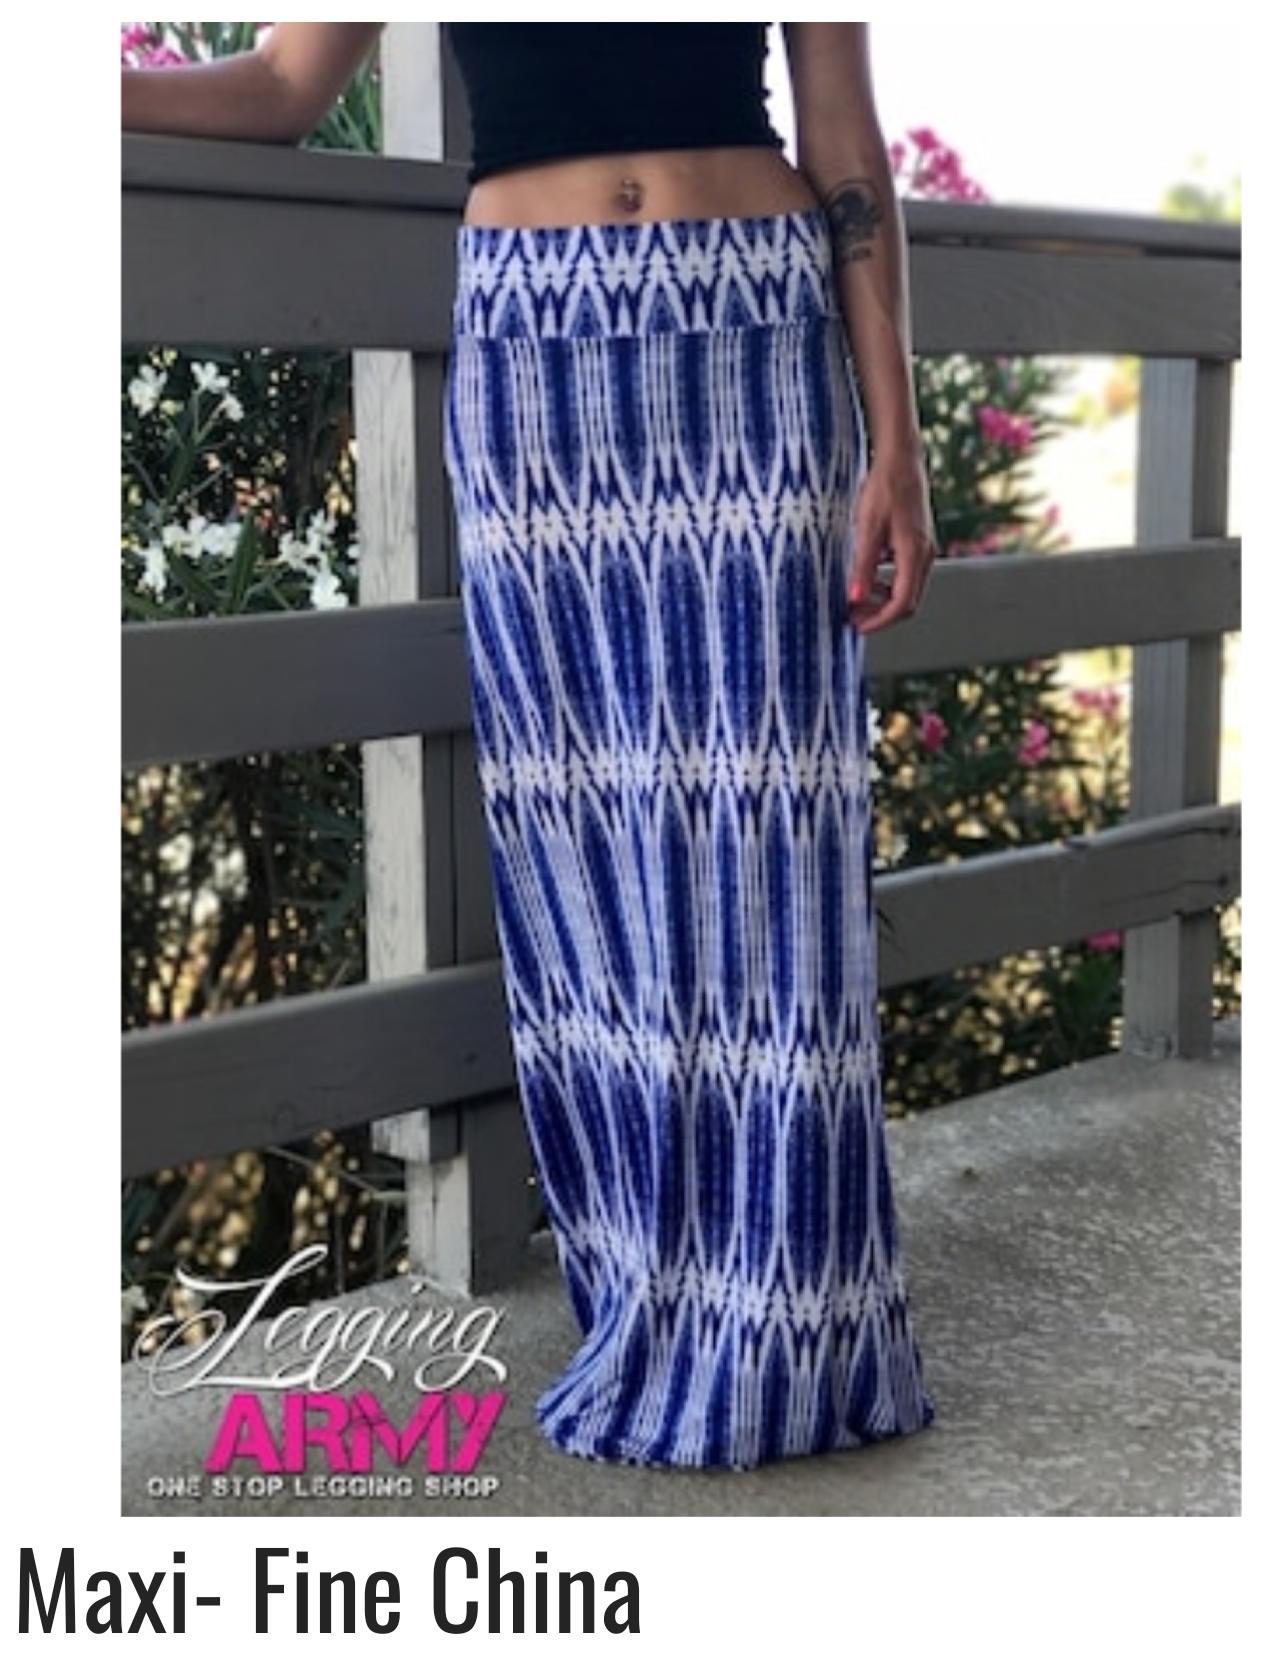 Maxi Skirts S-XL Price $20-$22